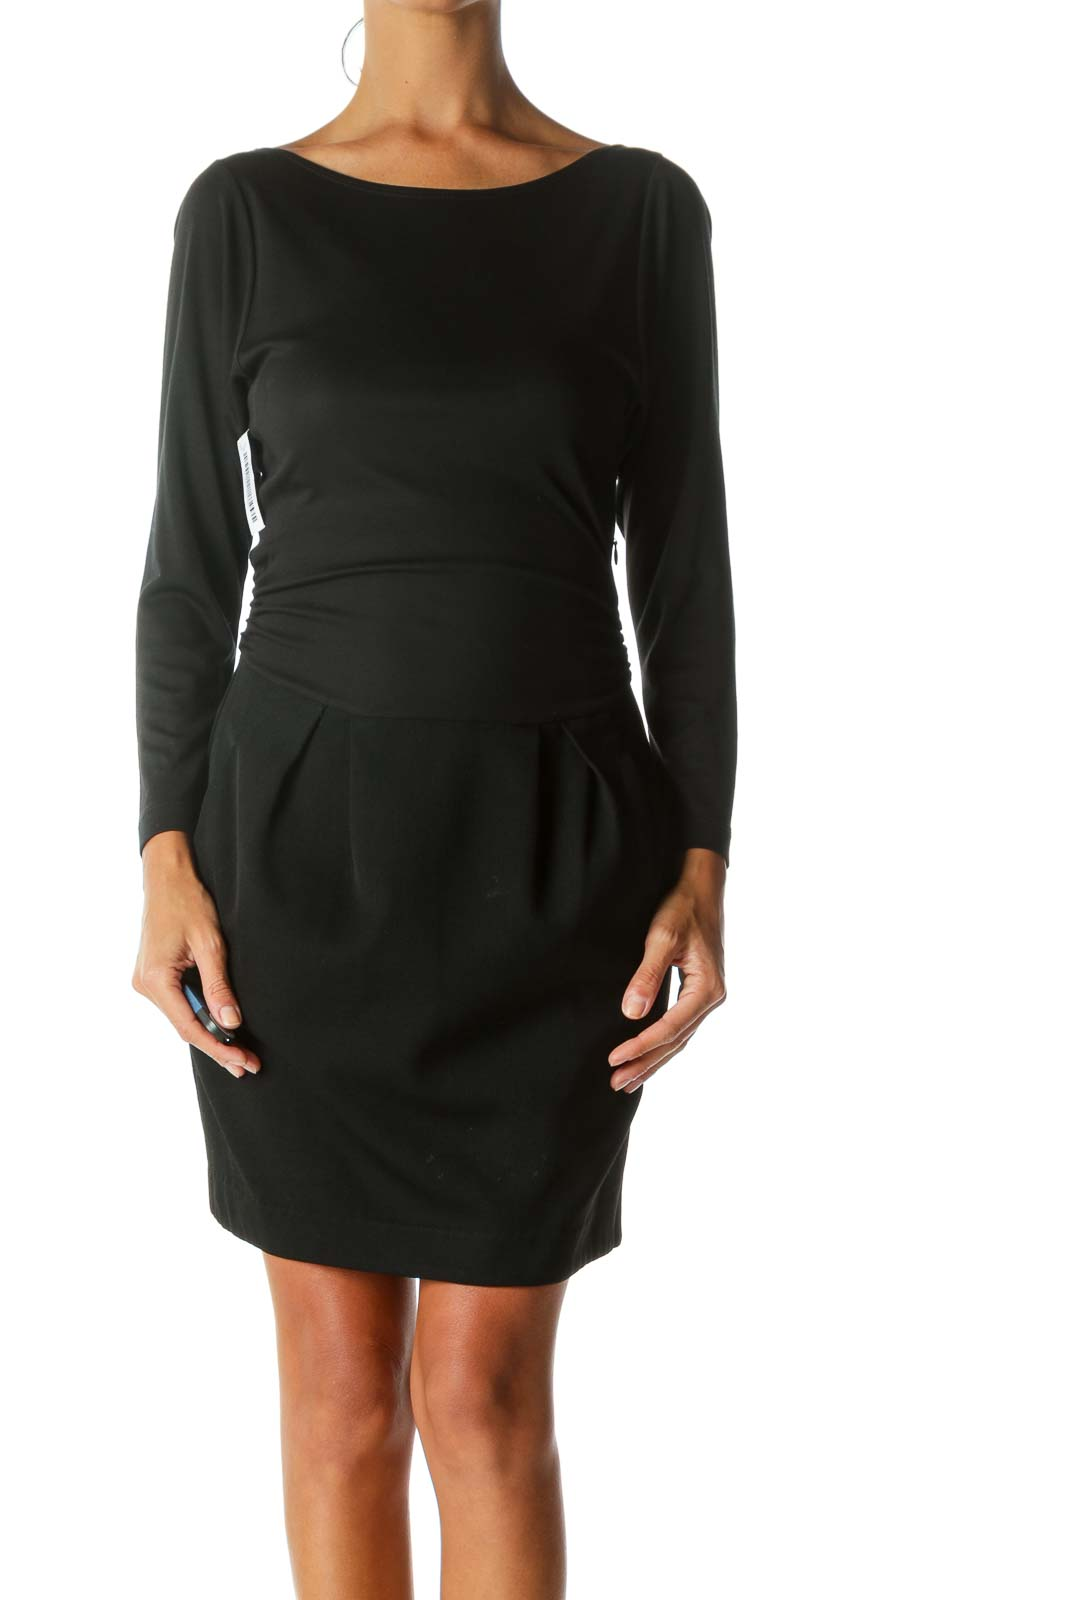 Black Long-Sleeve Mixed-Media Pleated-Skirt Pocketed Work Dress Front